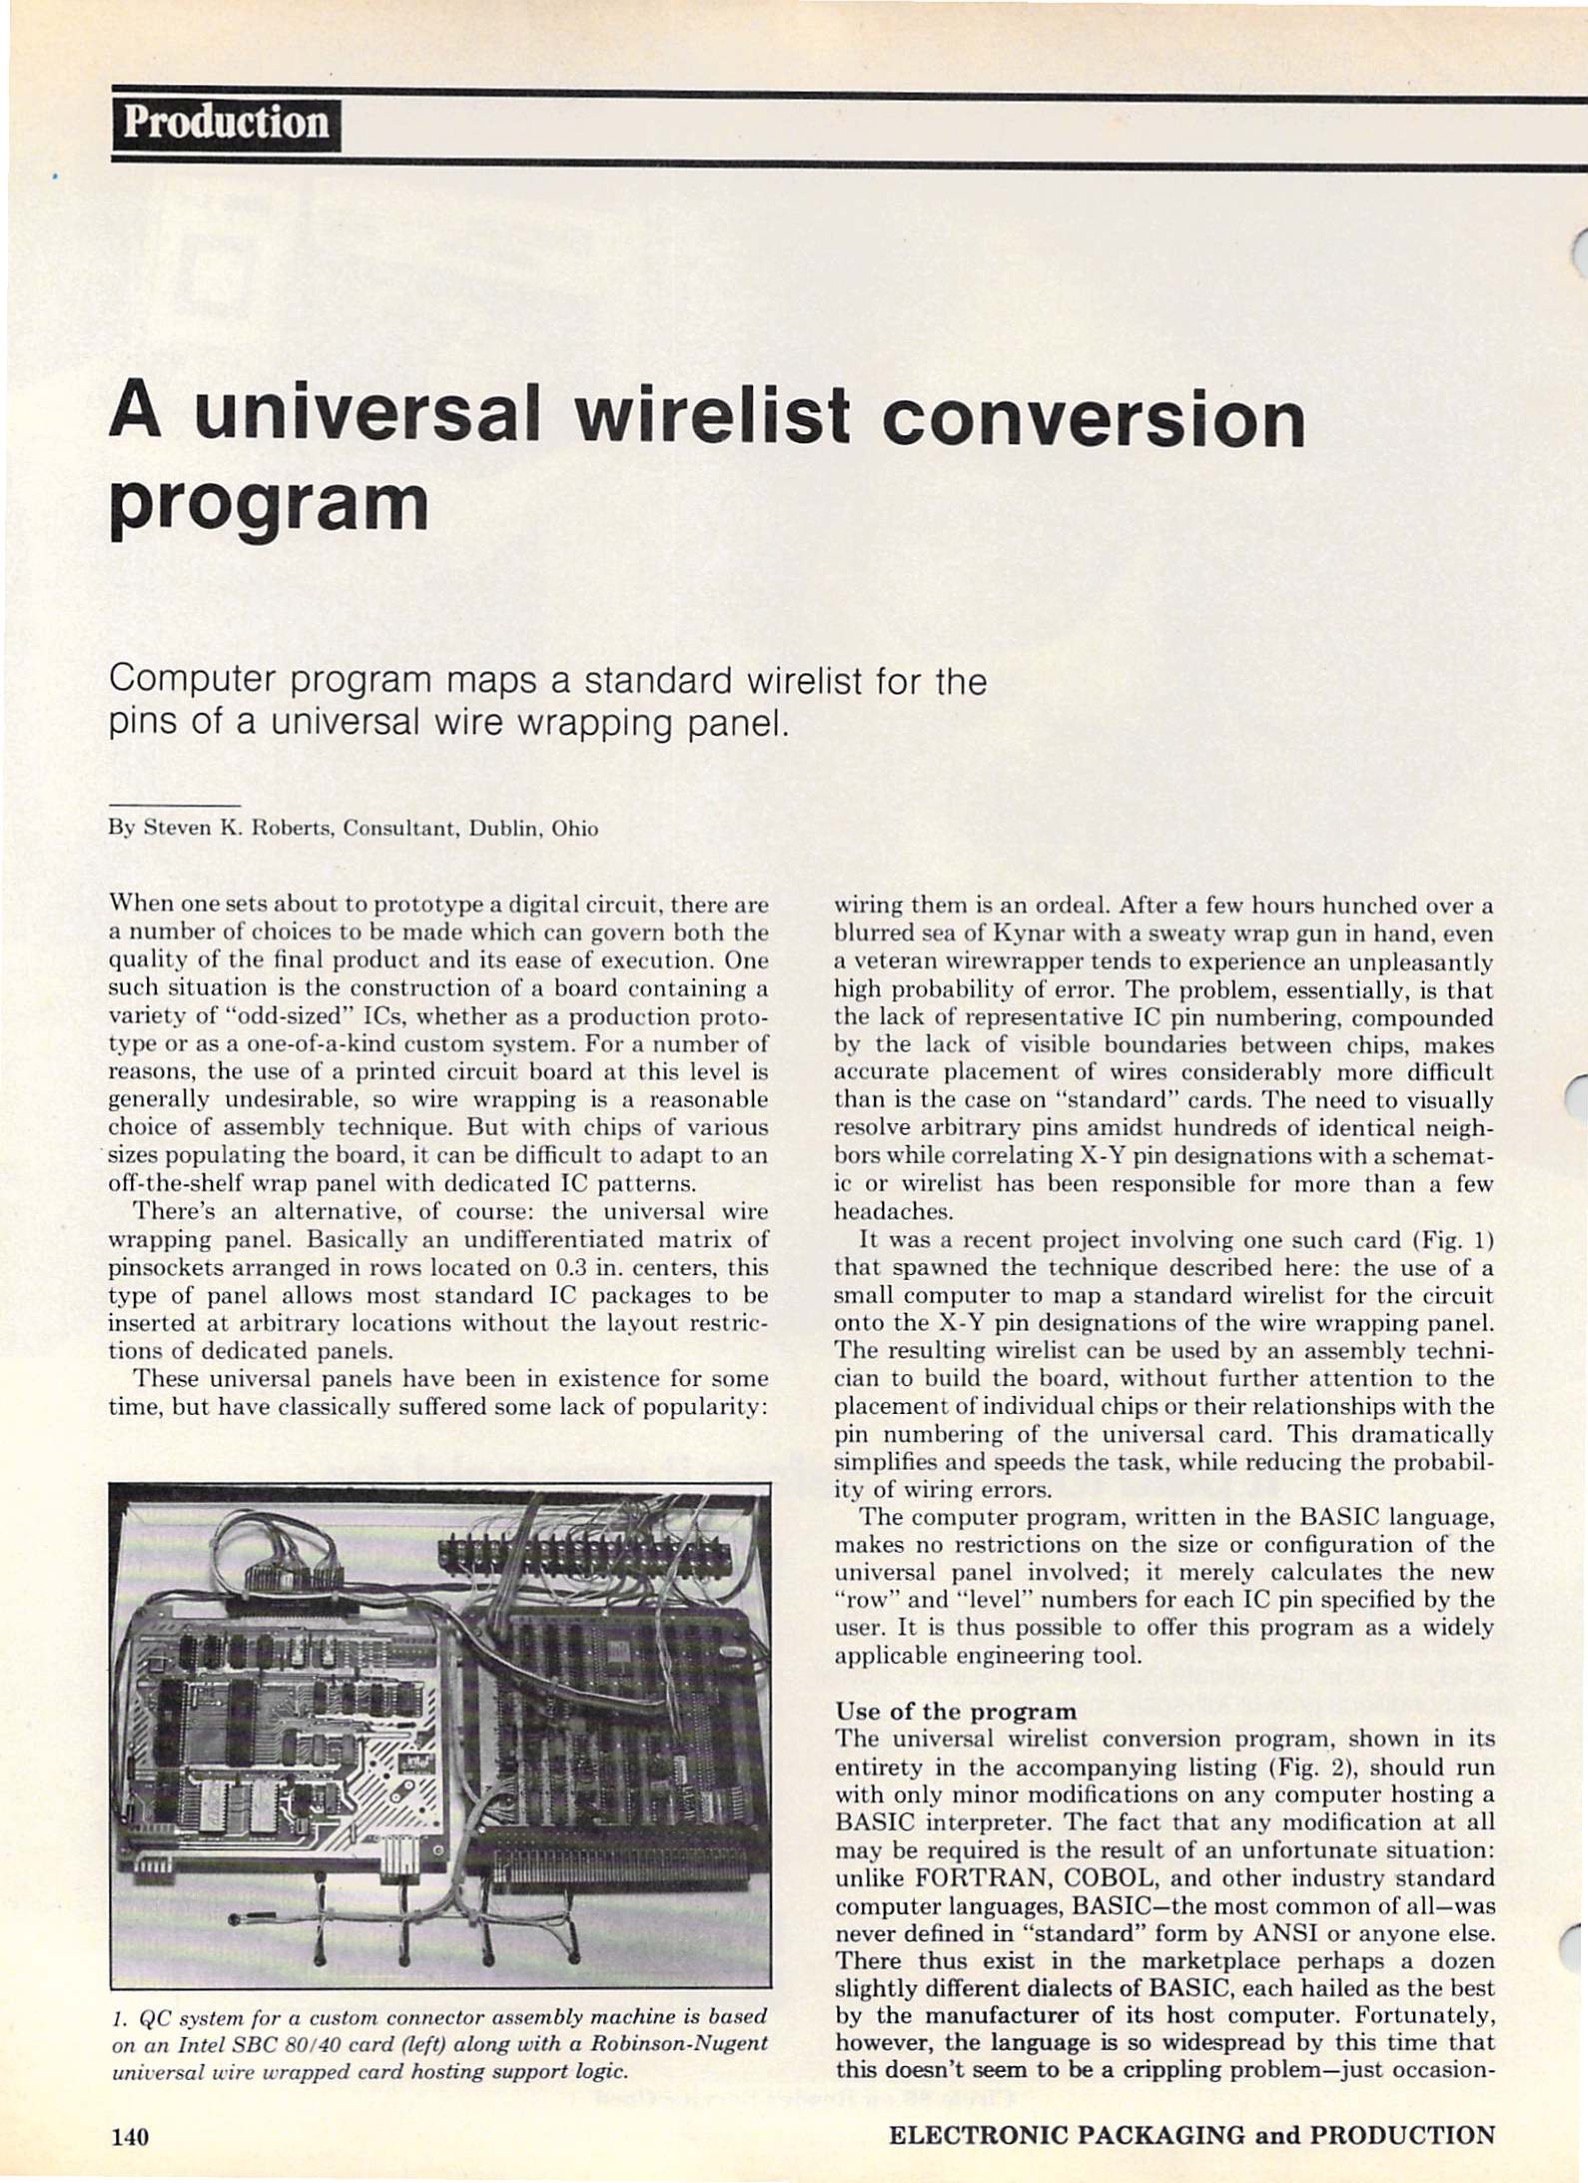 Universal Wirelist Conversion Program - Nomadic Research Labs